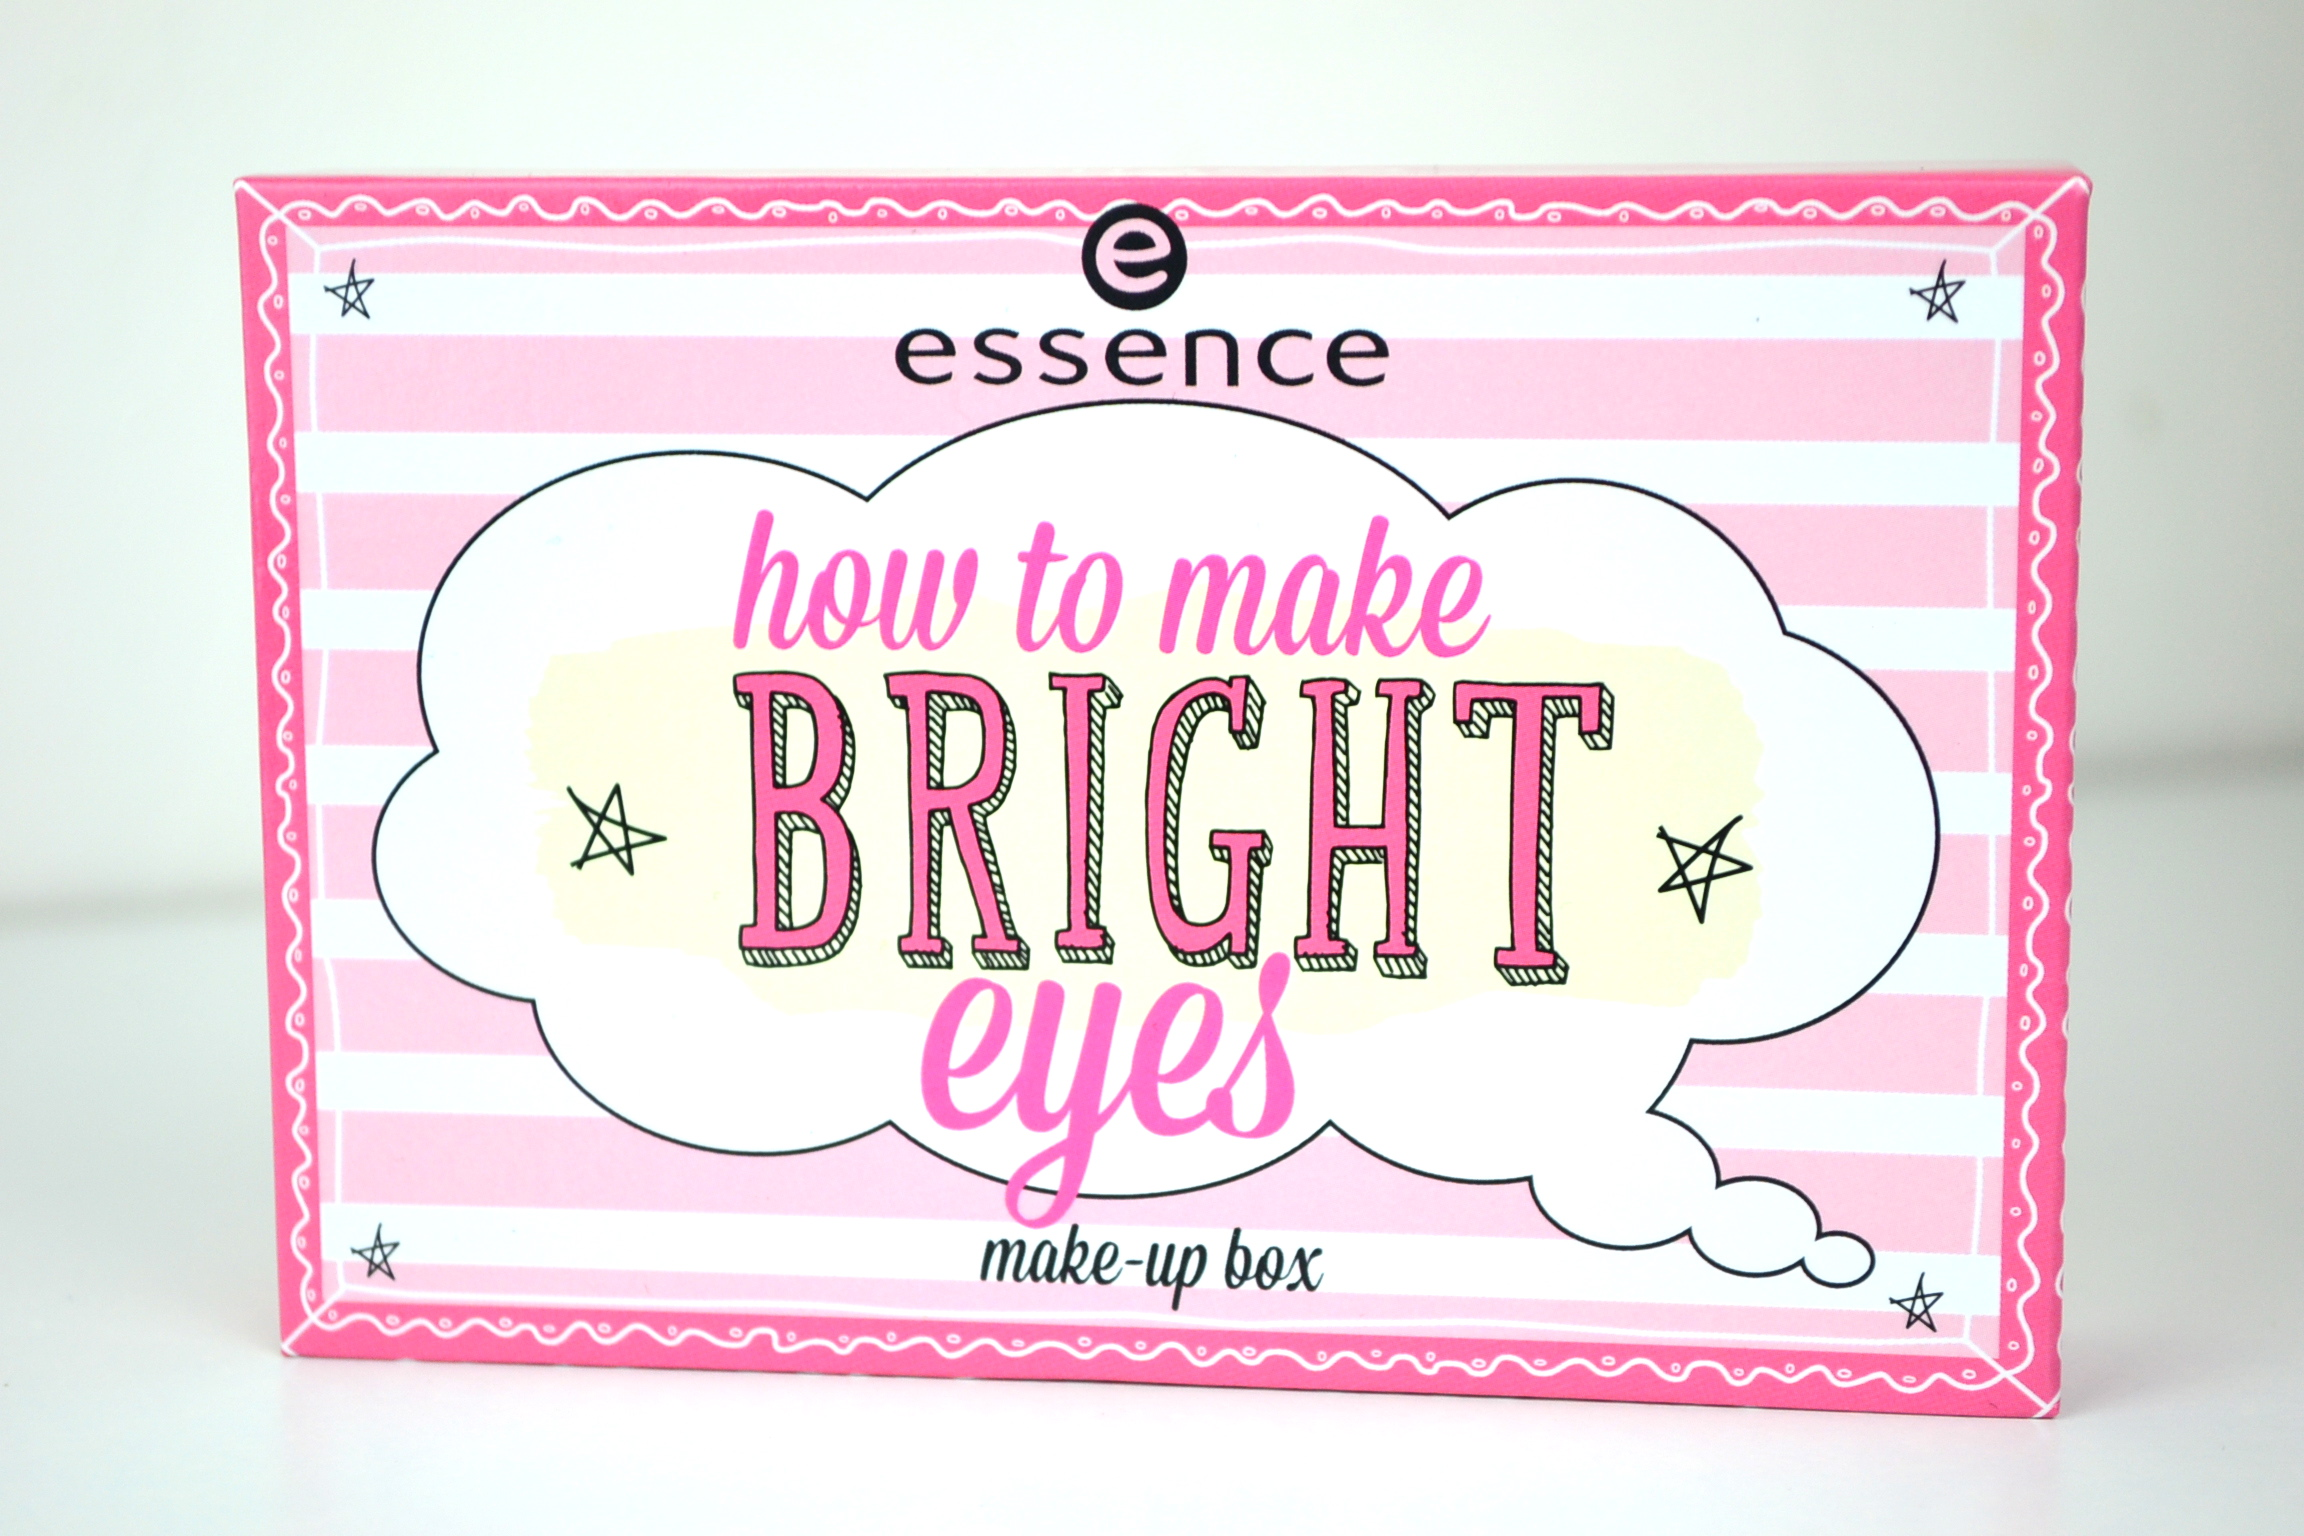 essence-bright-eyes